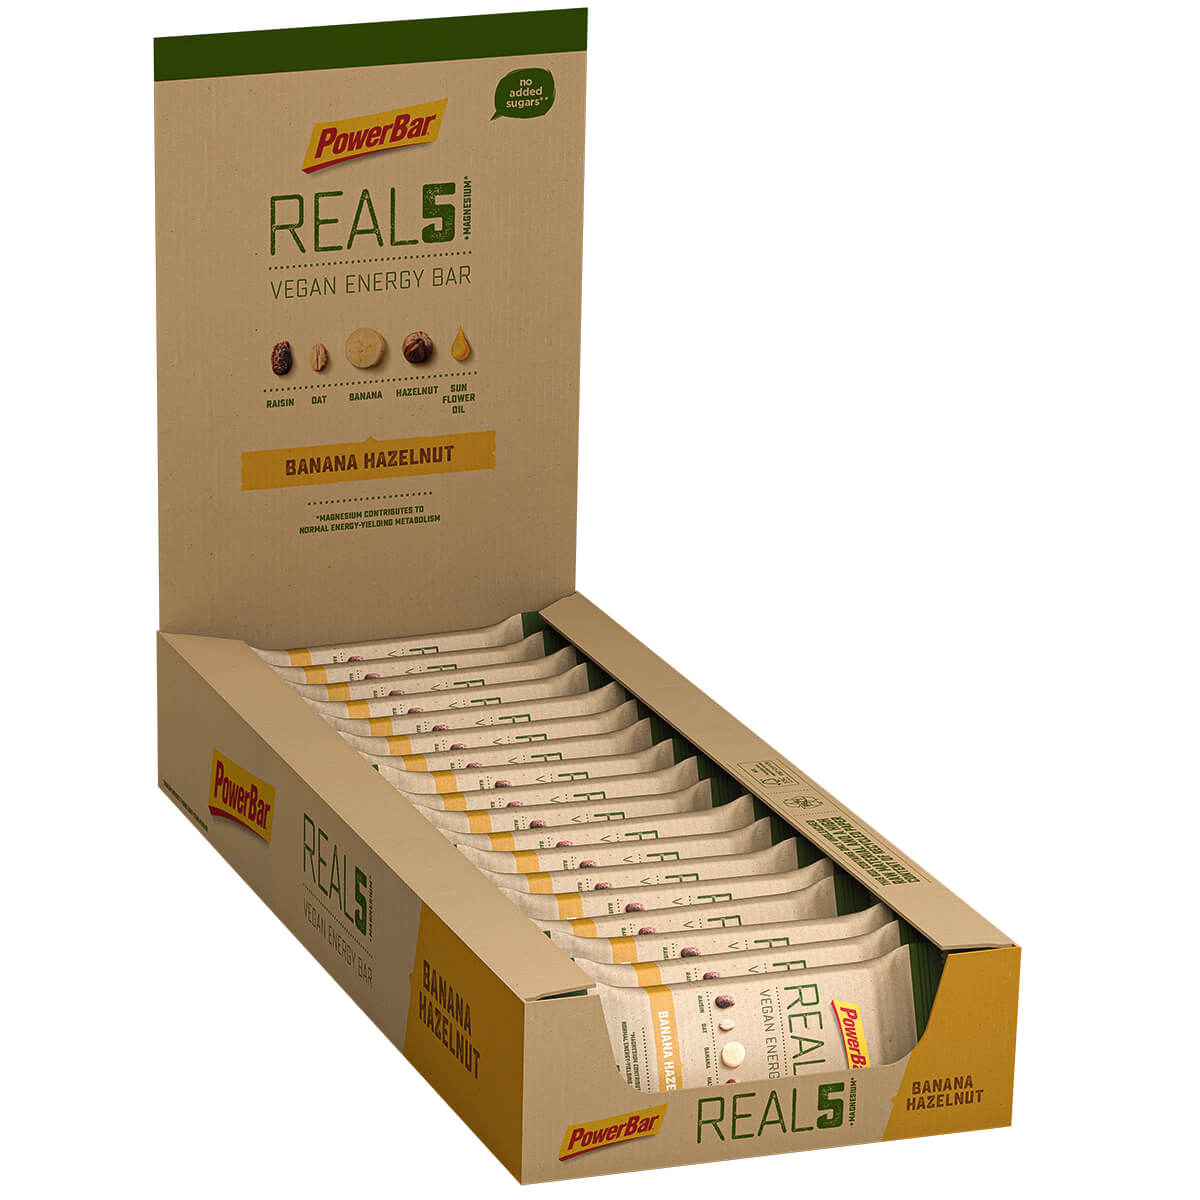 REAL5 Vegan Energy Bar - MHD AKTION